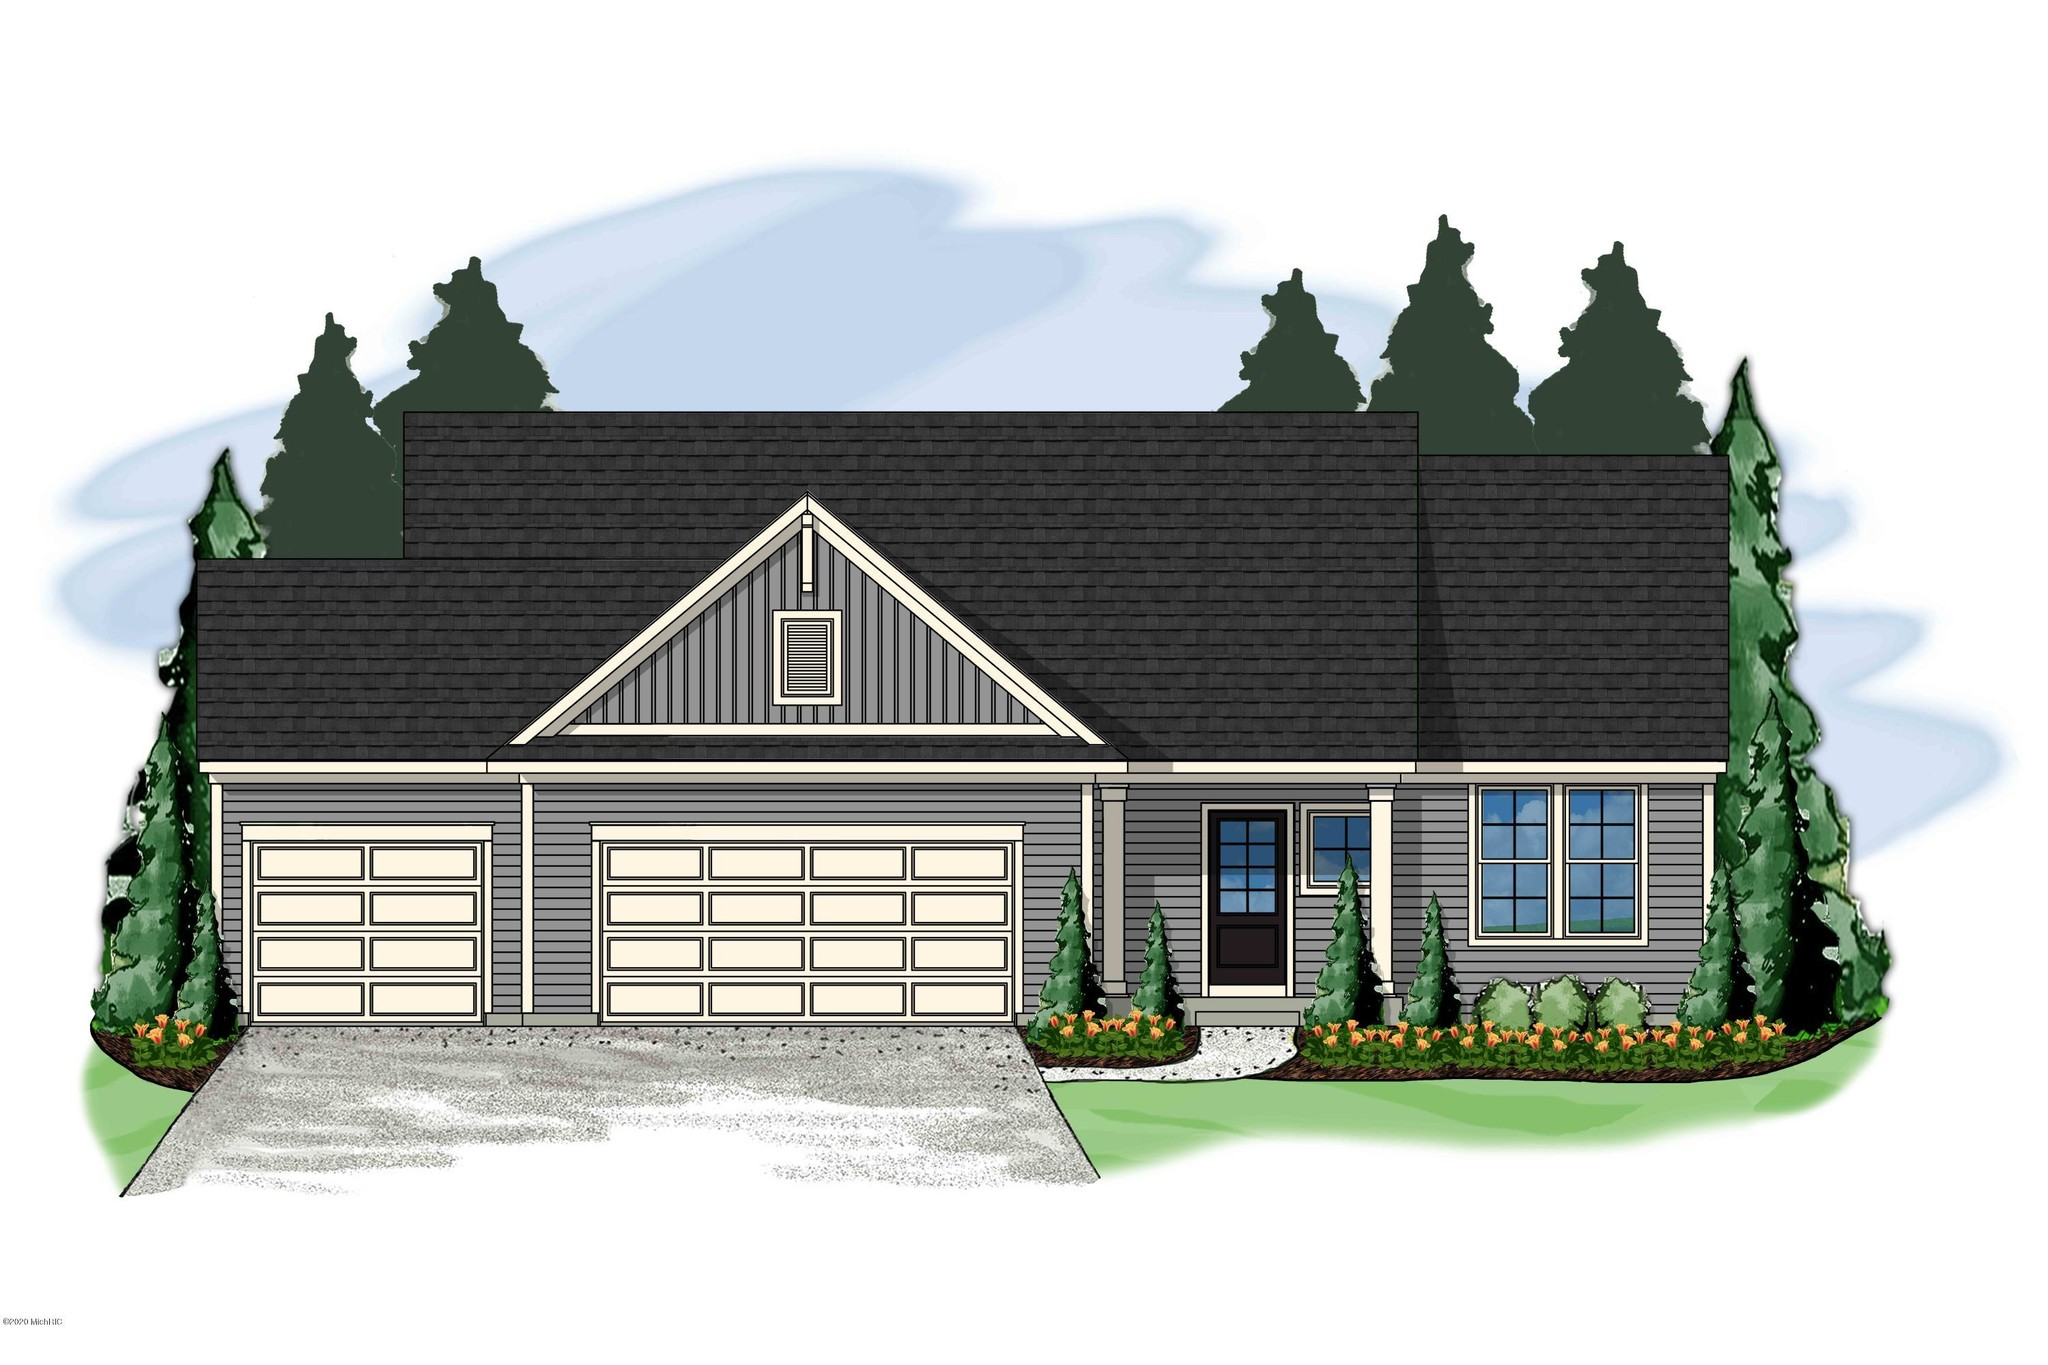 3-Bedroom House In Richland